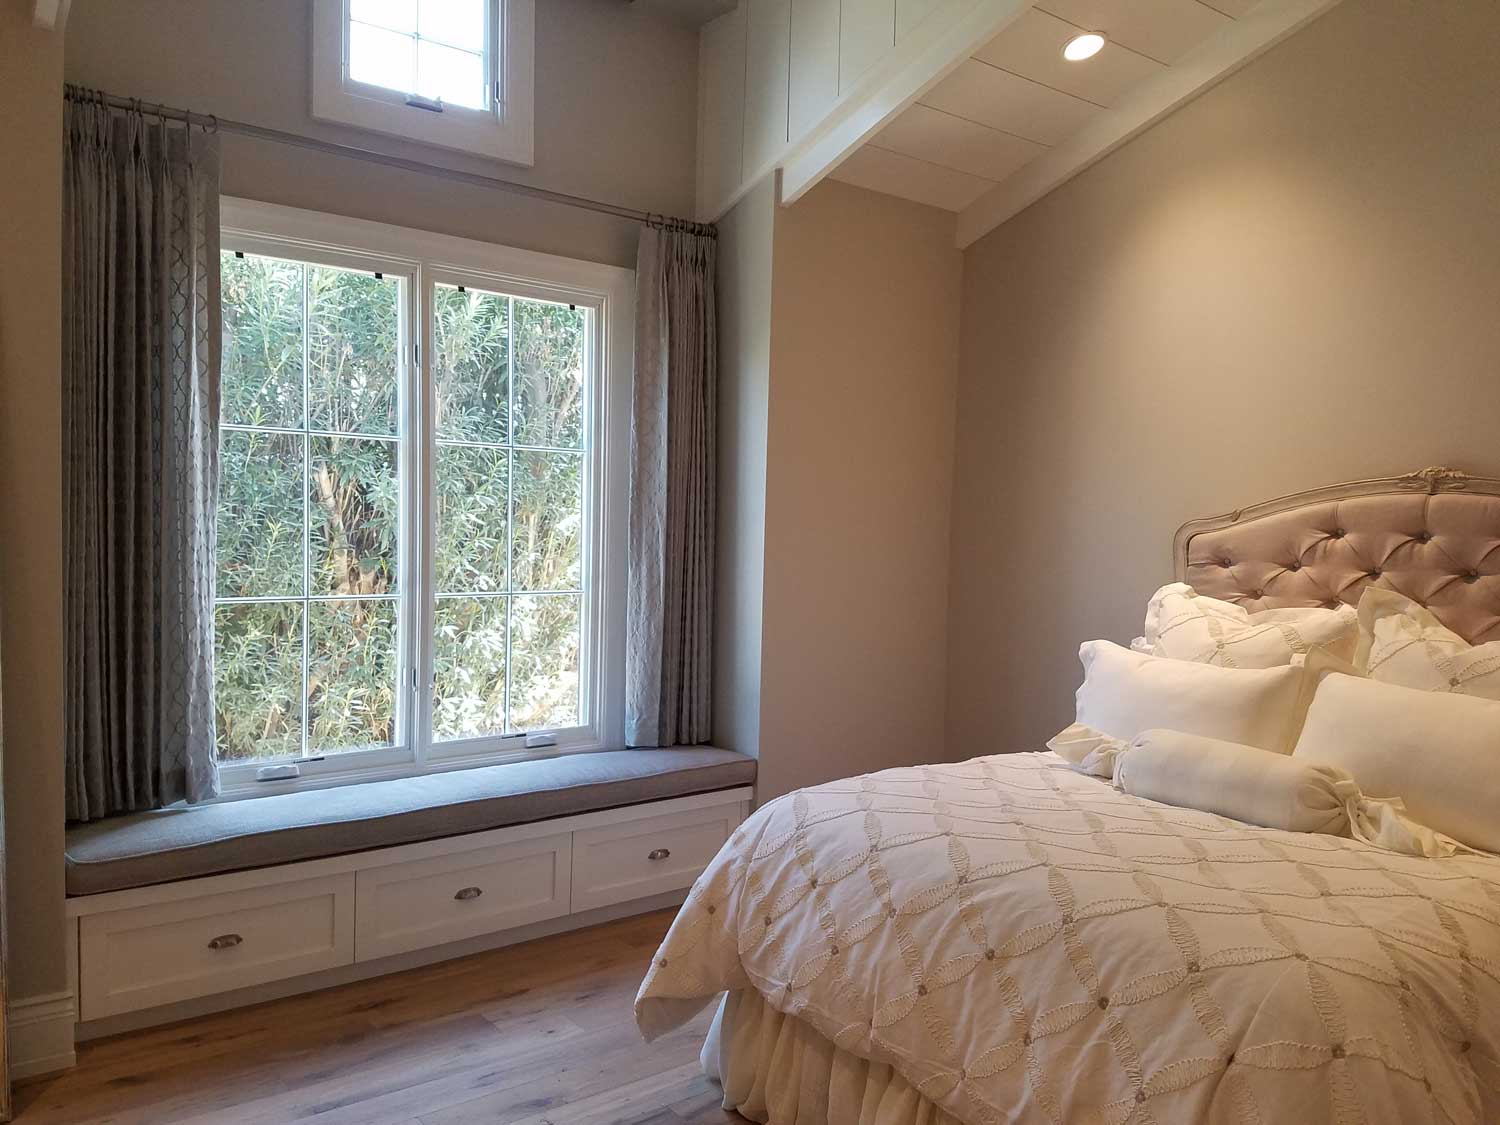 bedroom with large window with drawn drapes